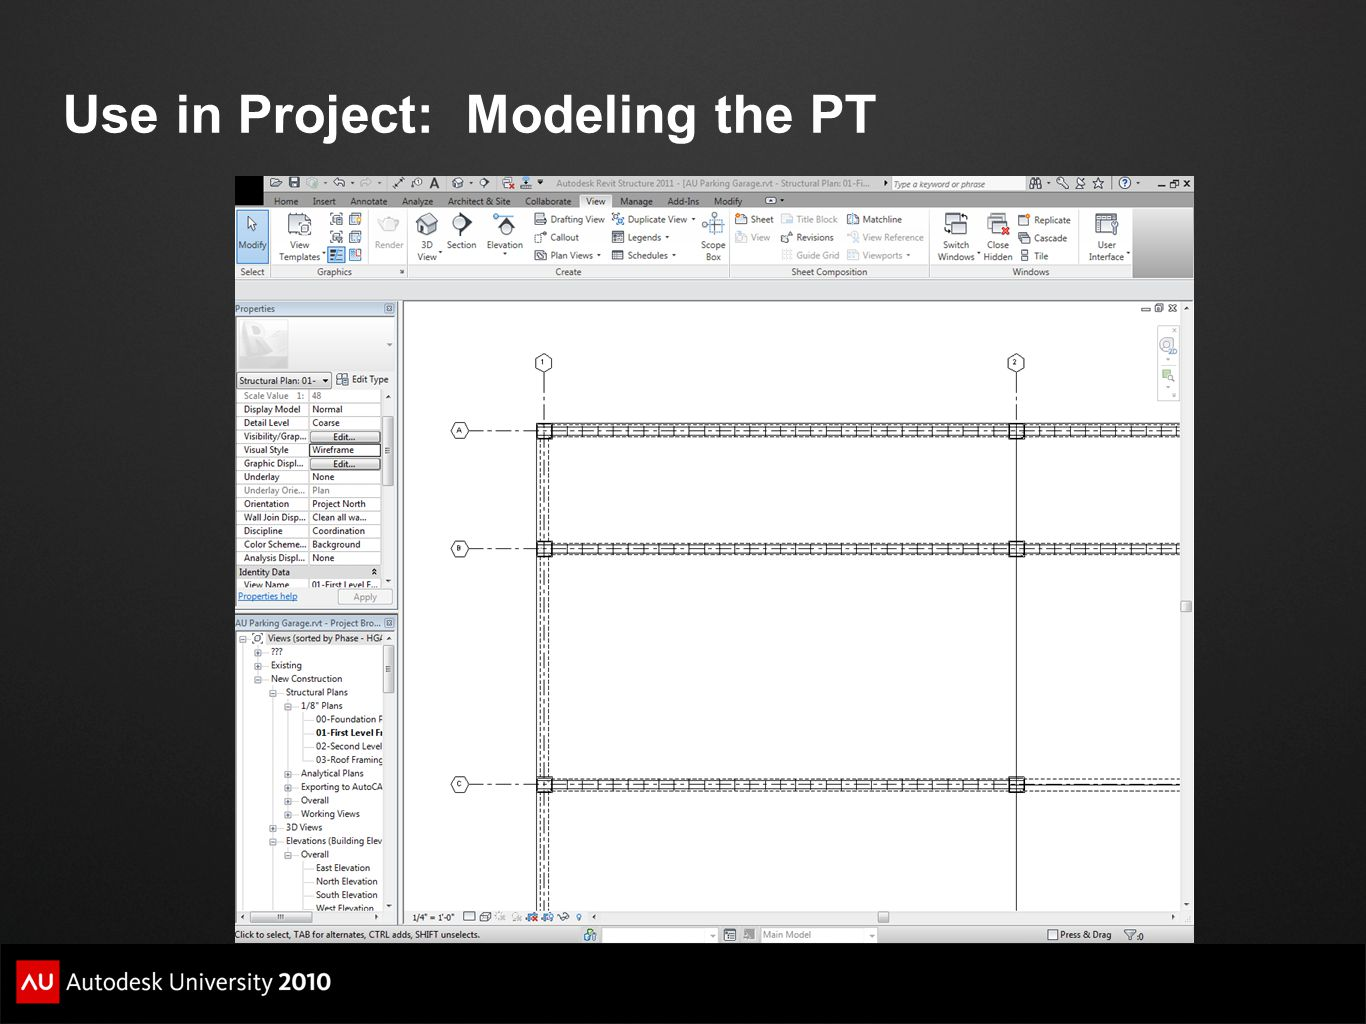 Use in Project: Modeling the PT